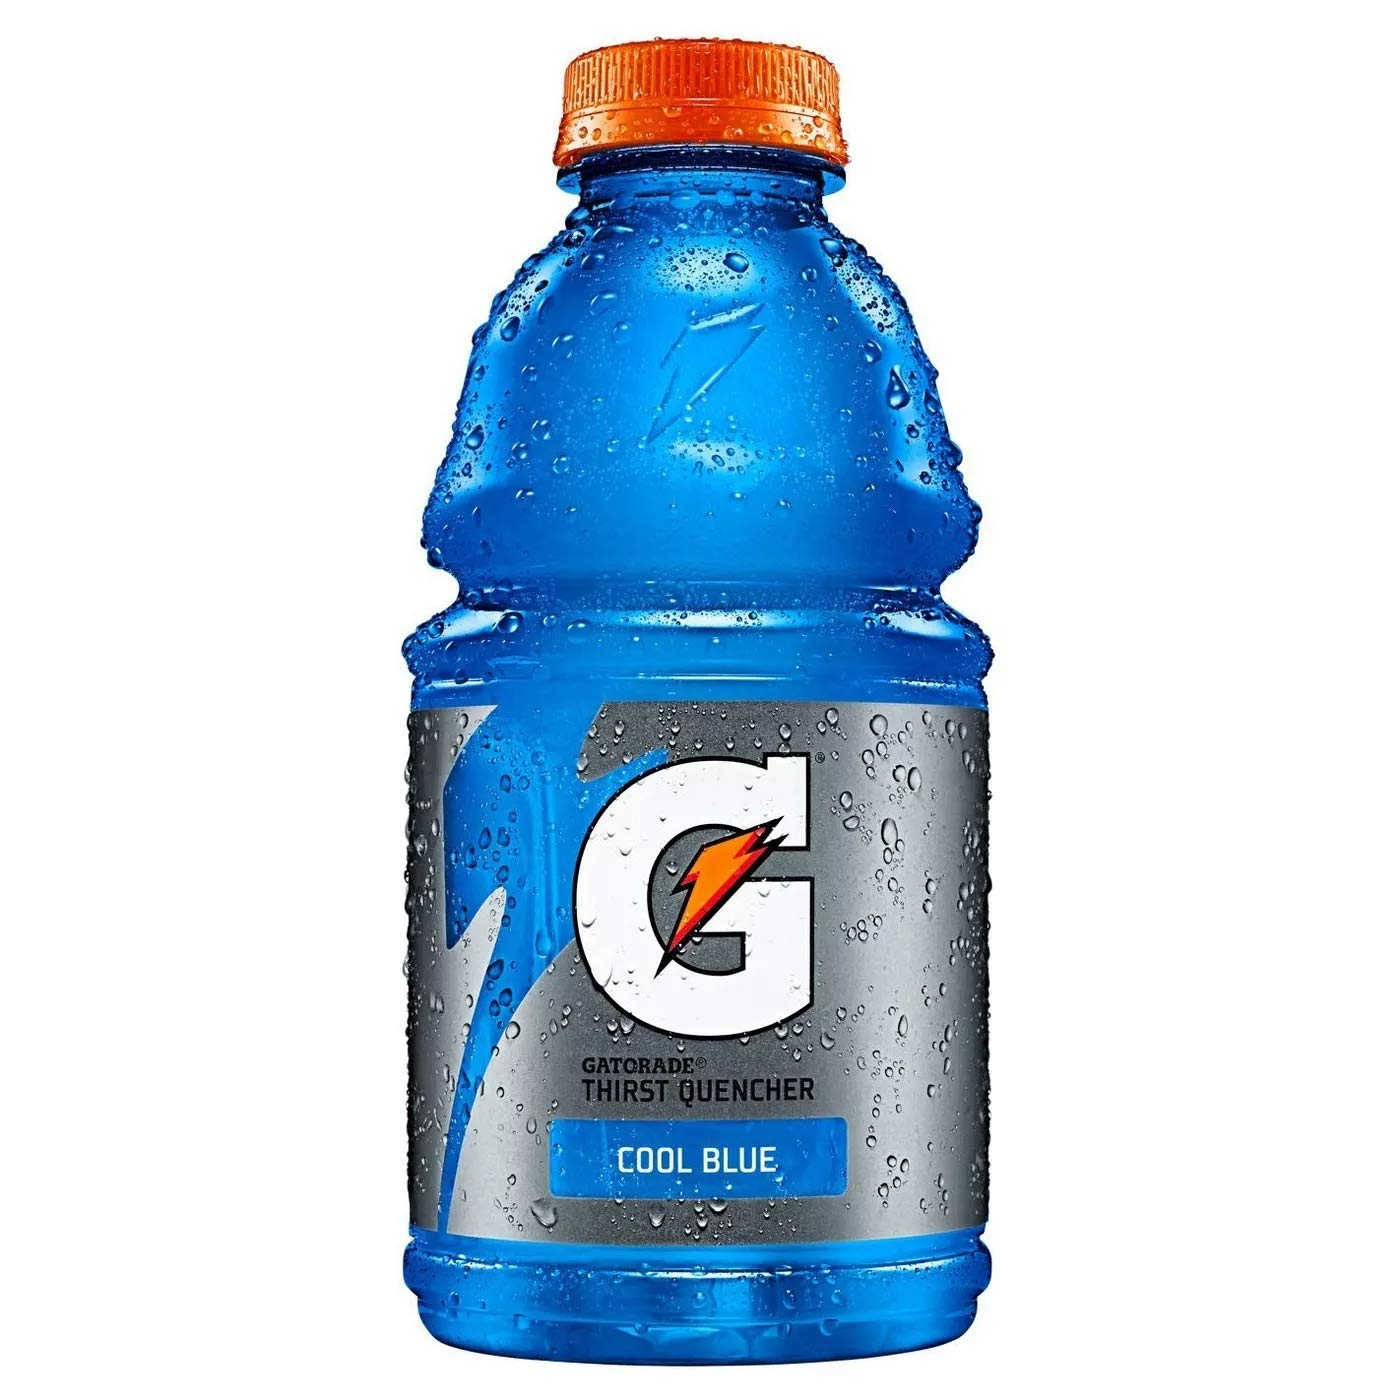 Gatorade Cool Blue, Blue, Thirst Quencher Sports Drink, 32oz Bottle (Pack of 8, Total of 256 Oz)